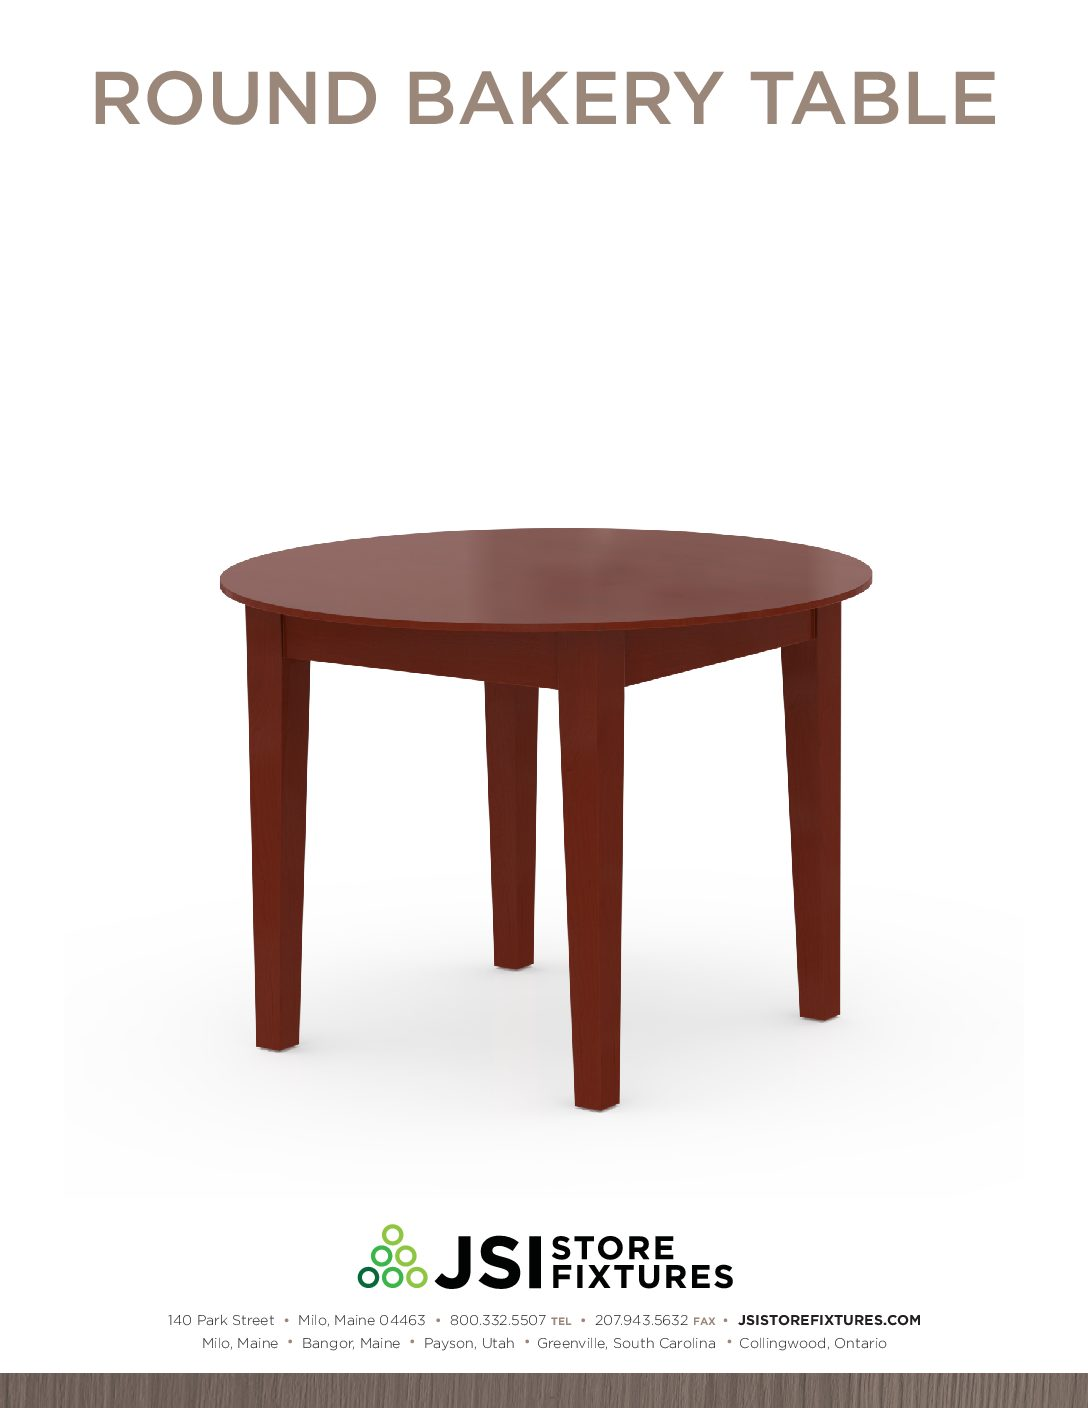 Round Bakery Table Spec Sheet